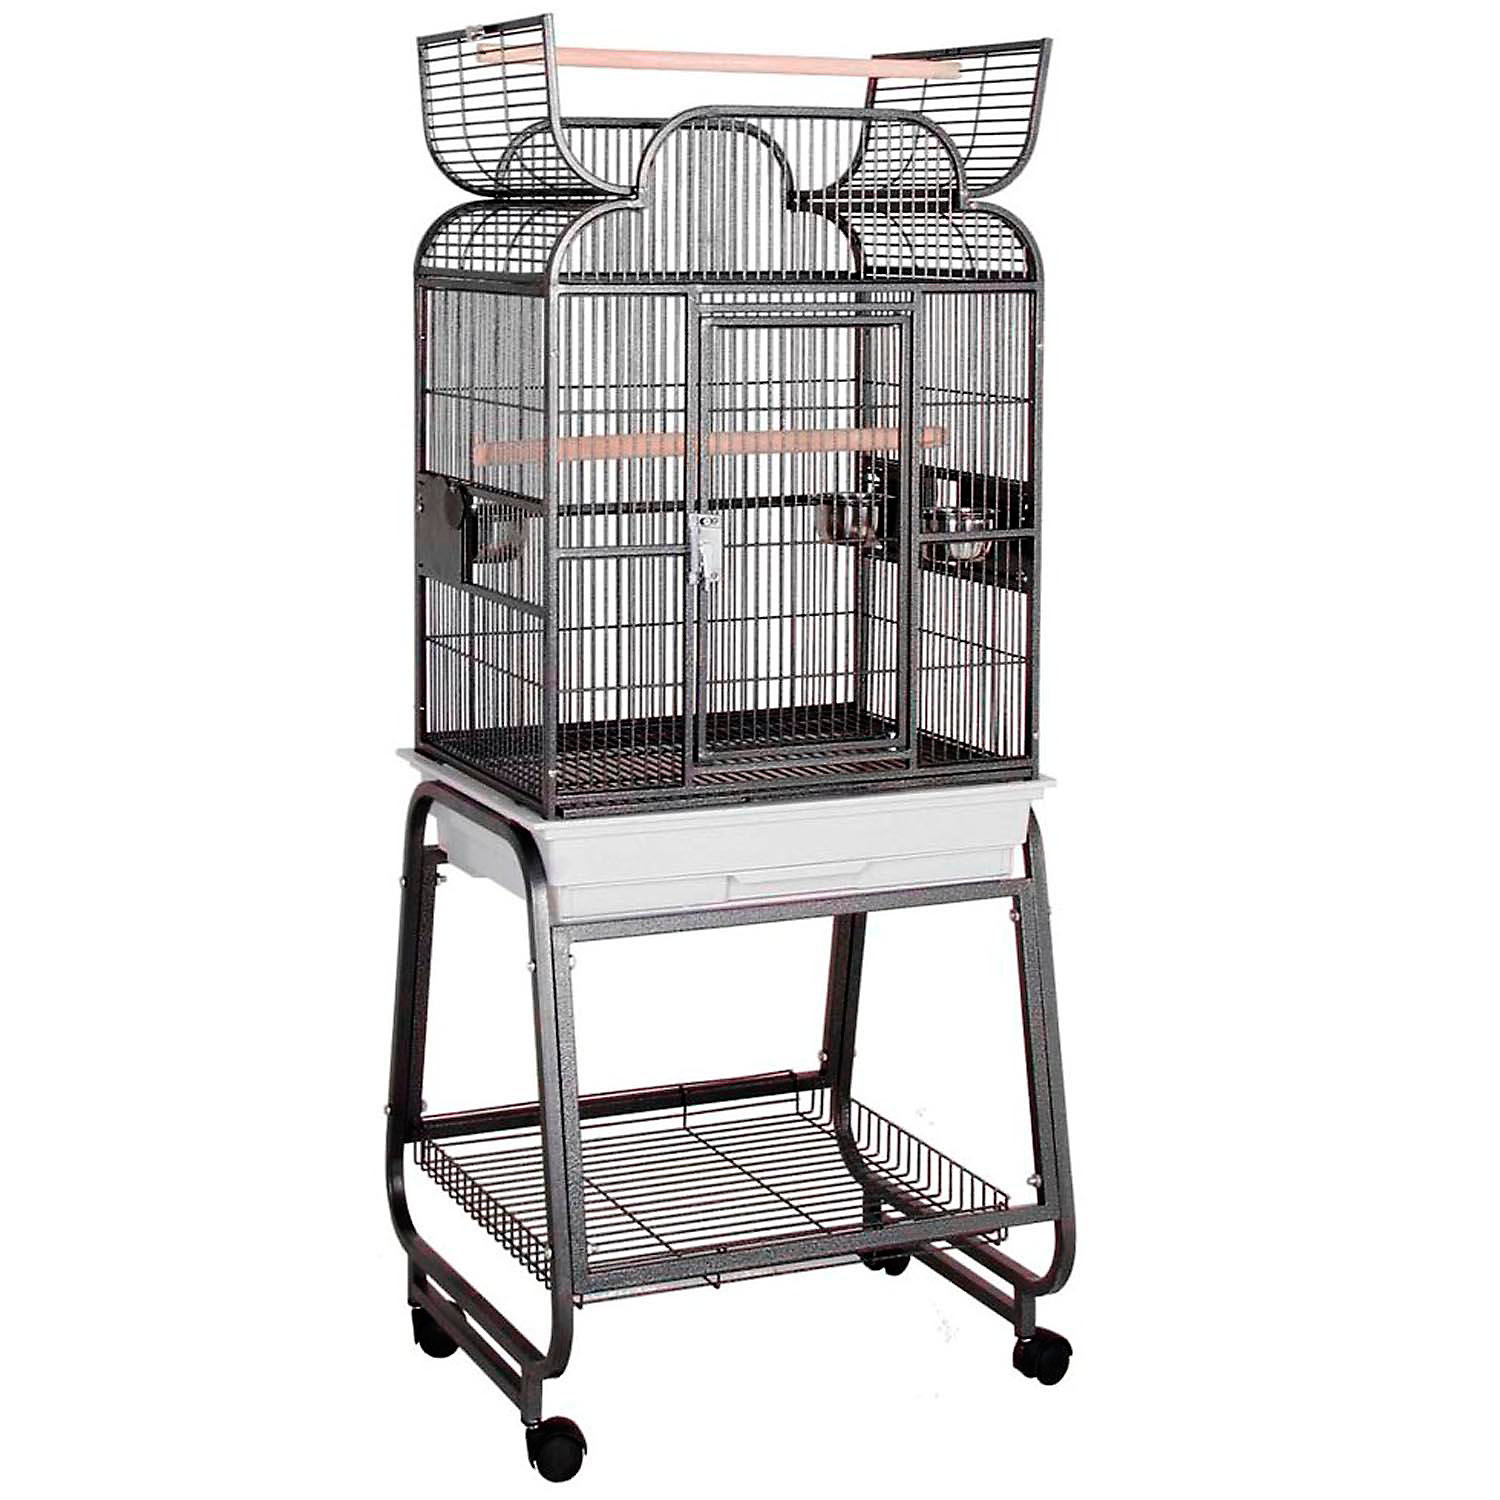 HQ Platinum Opening Scroll Top with Cart Stand Bird Cage 22 L X 17 W X 55 H White